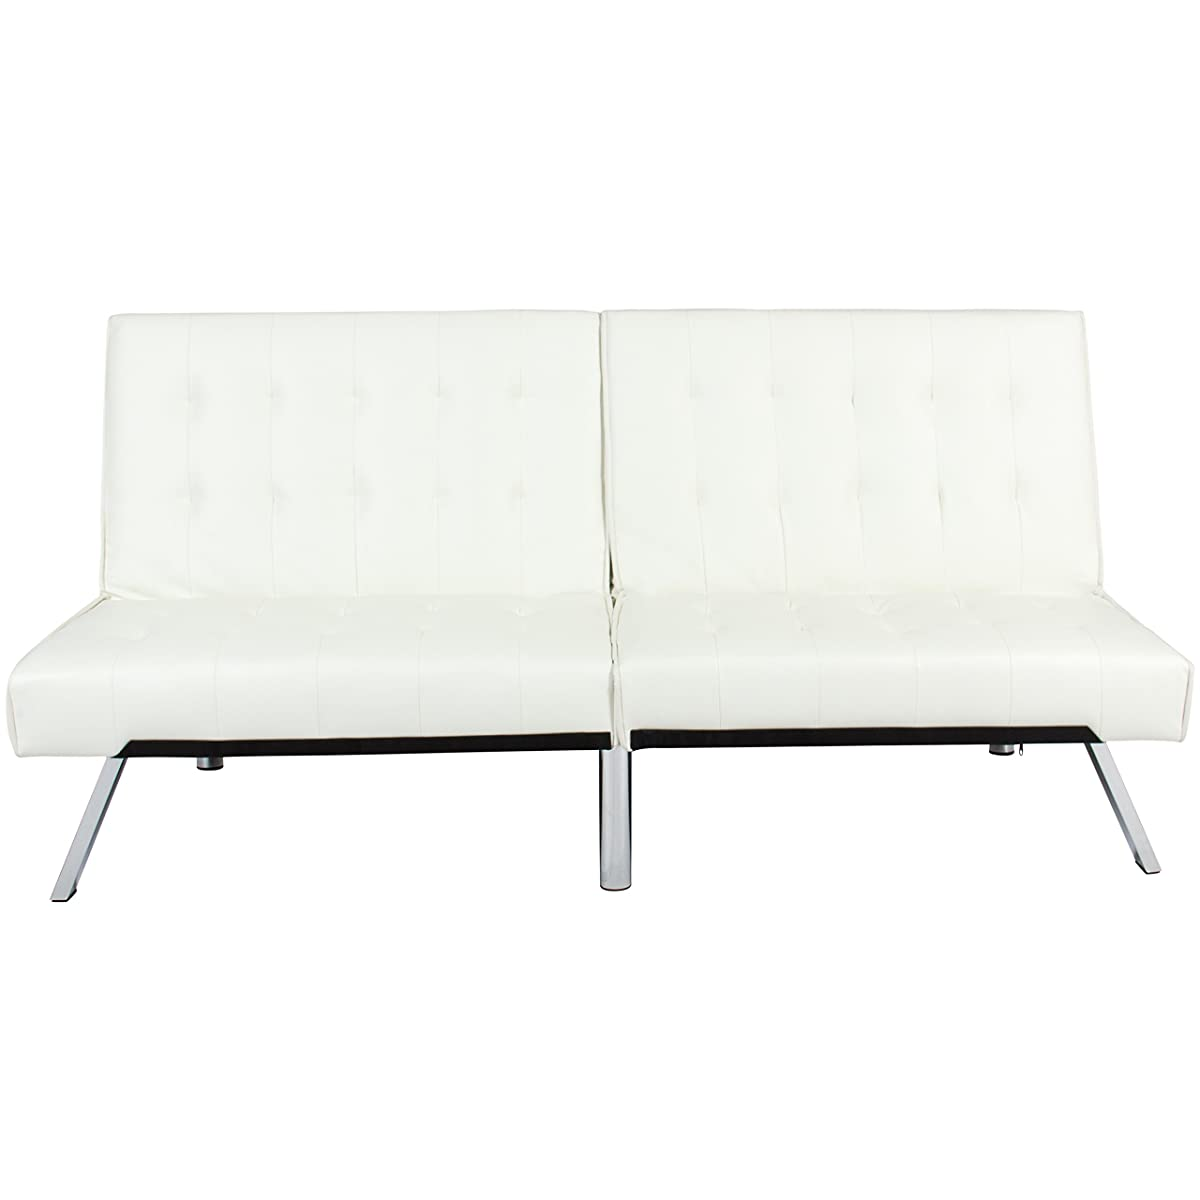 bobs furniture sofa bed